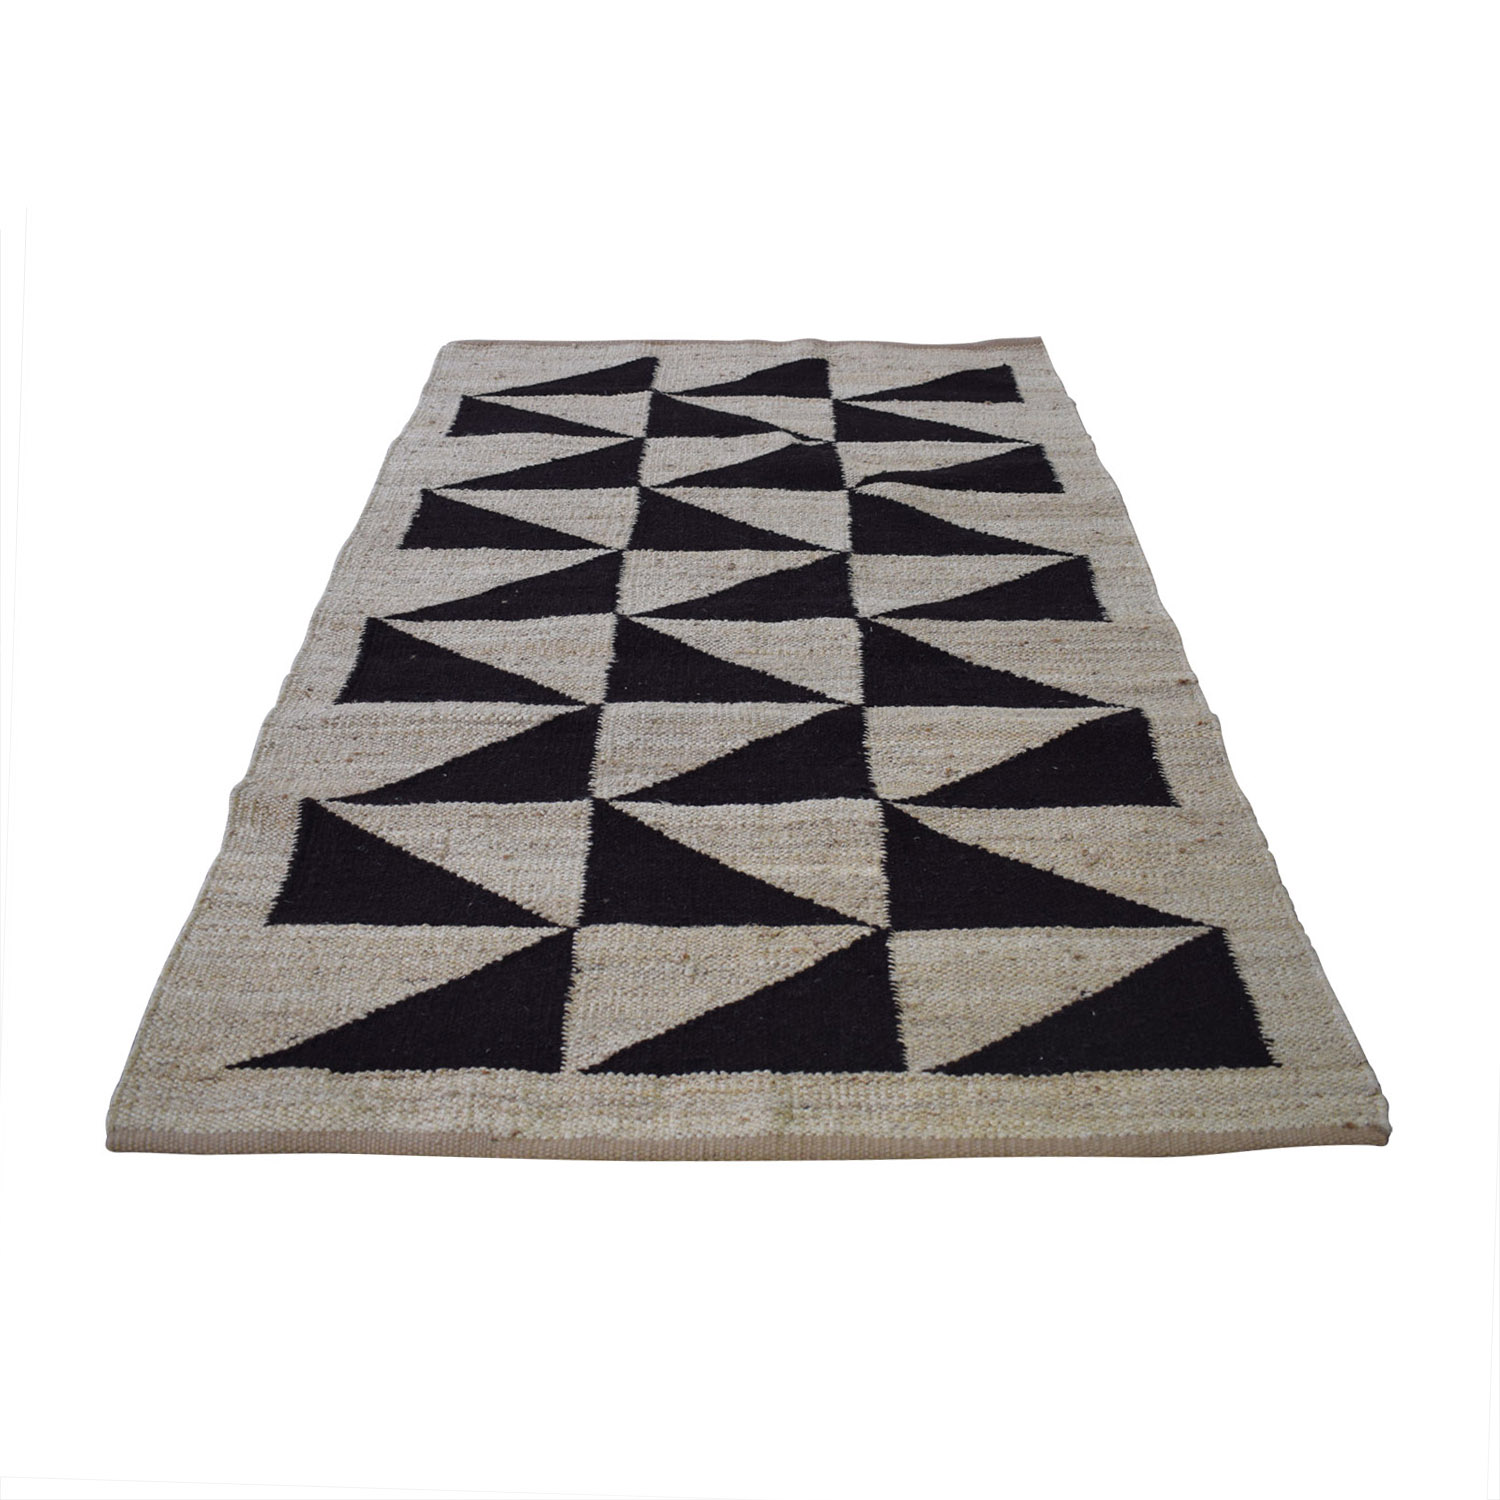 75 Off Obeetee Geometric Linen Flat Weave Rug Decor